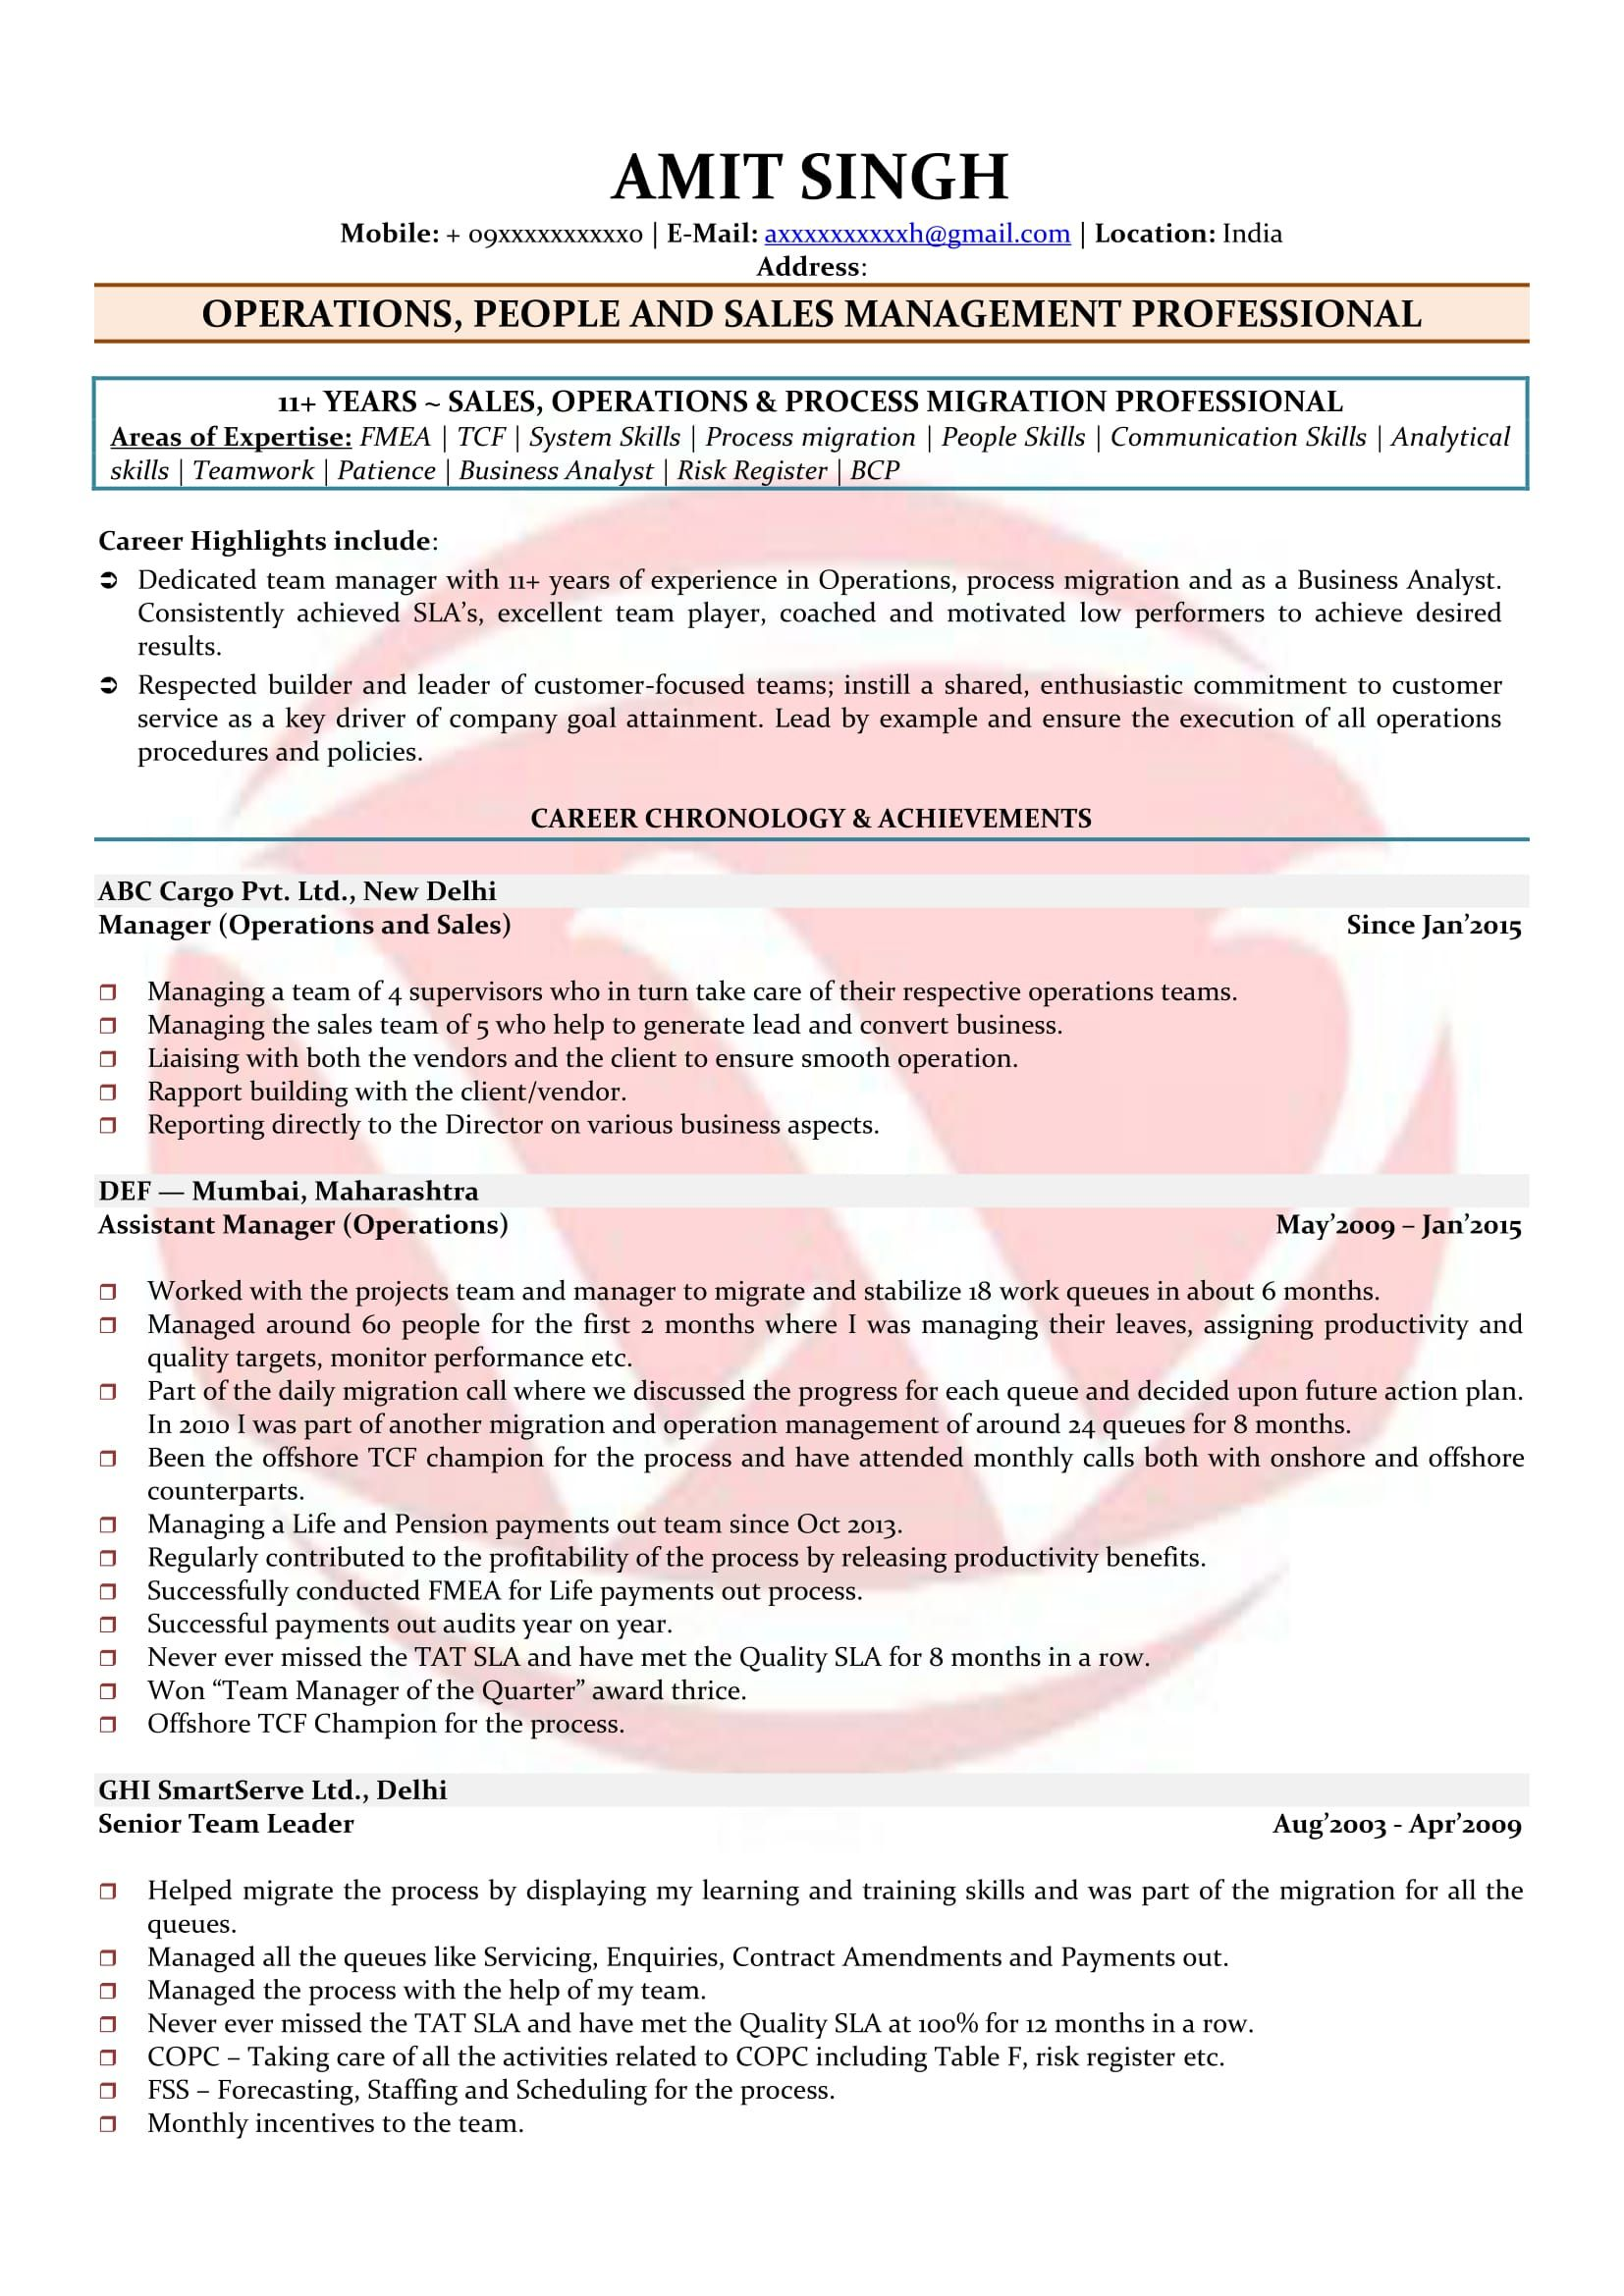 pin on resume format for assistant manager operations bpo acceptable reasons leaving job Resume Resume Format For Assistant Manager Operations Bpo